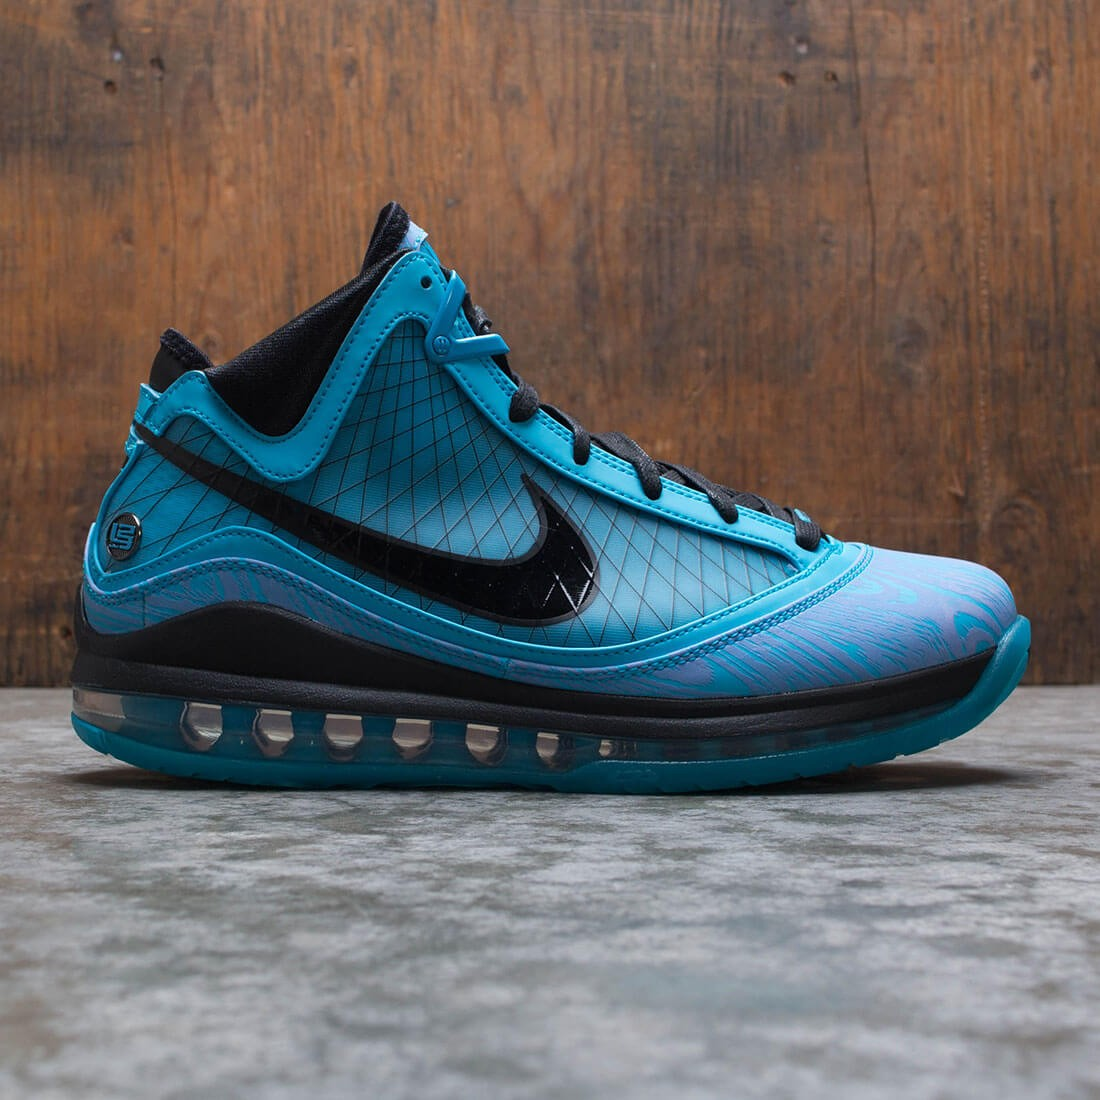 Nike Men Lebron 7 Qs (chlorine blue / black)